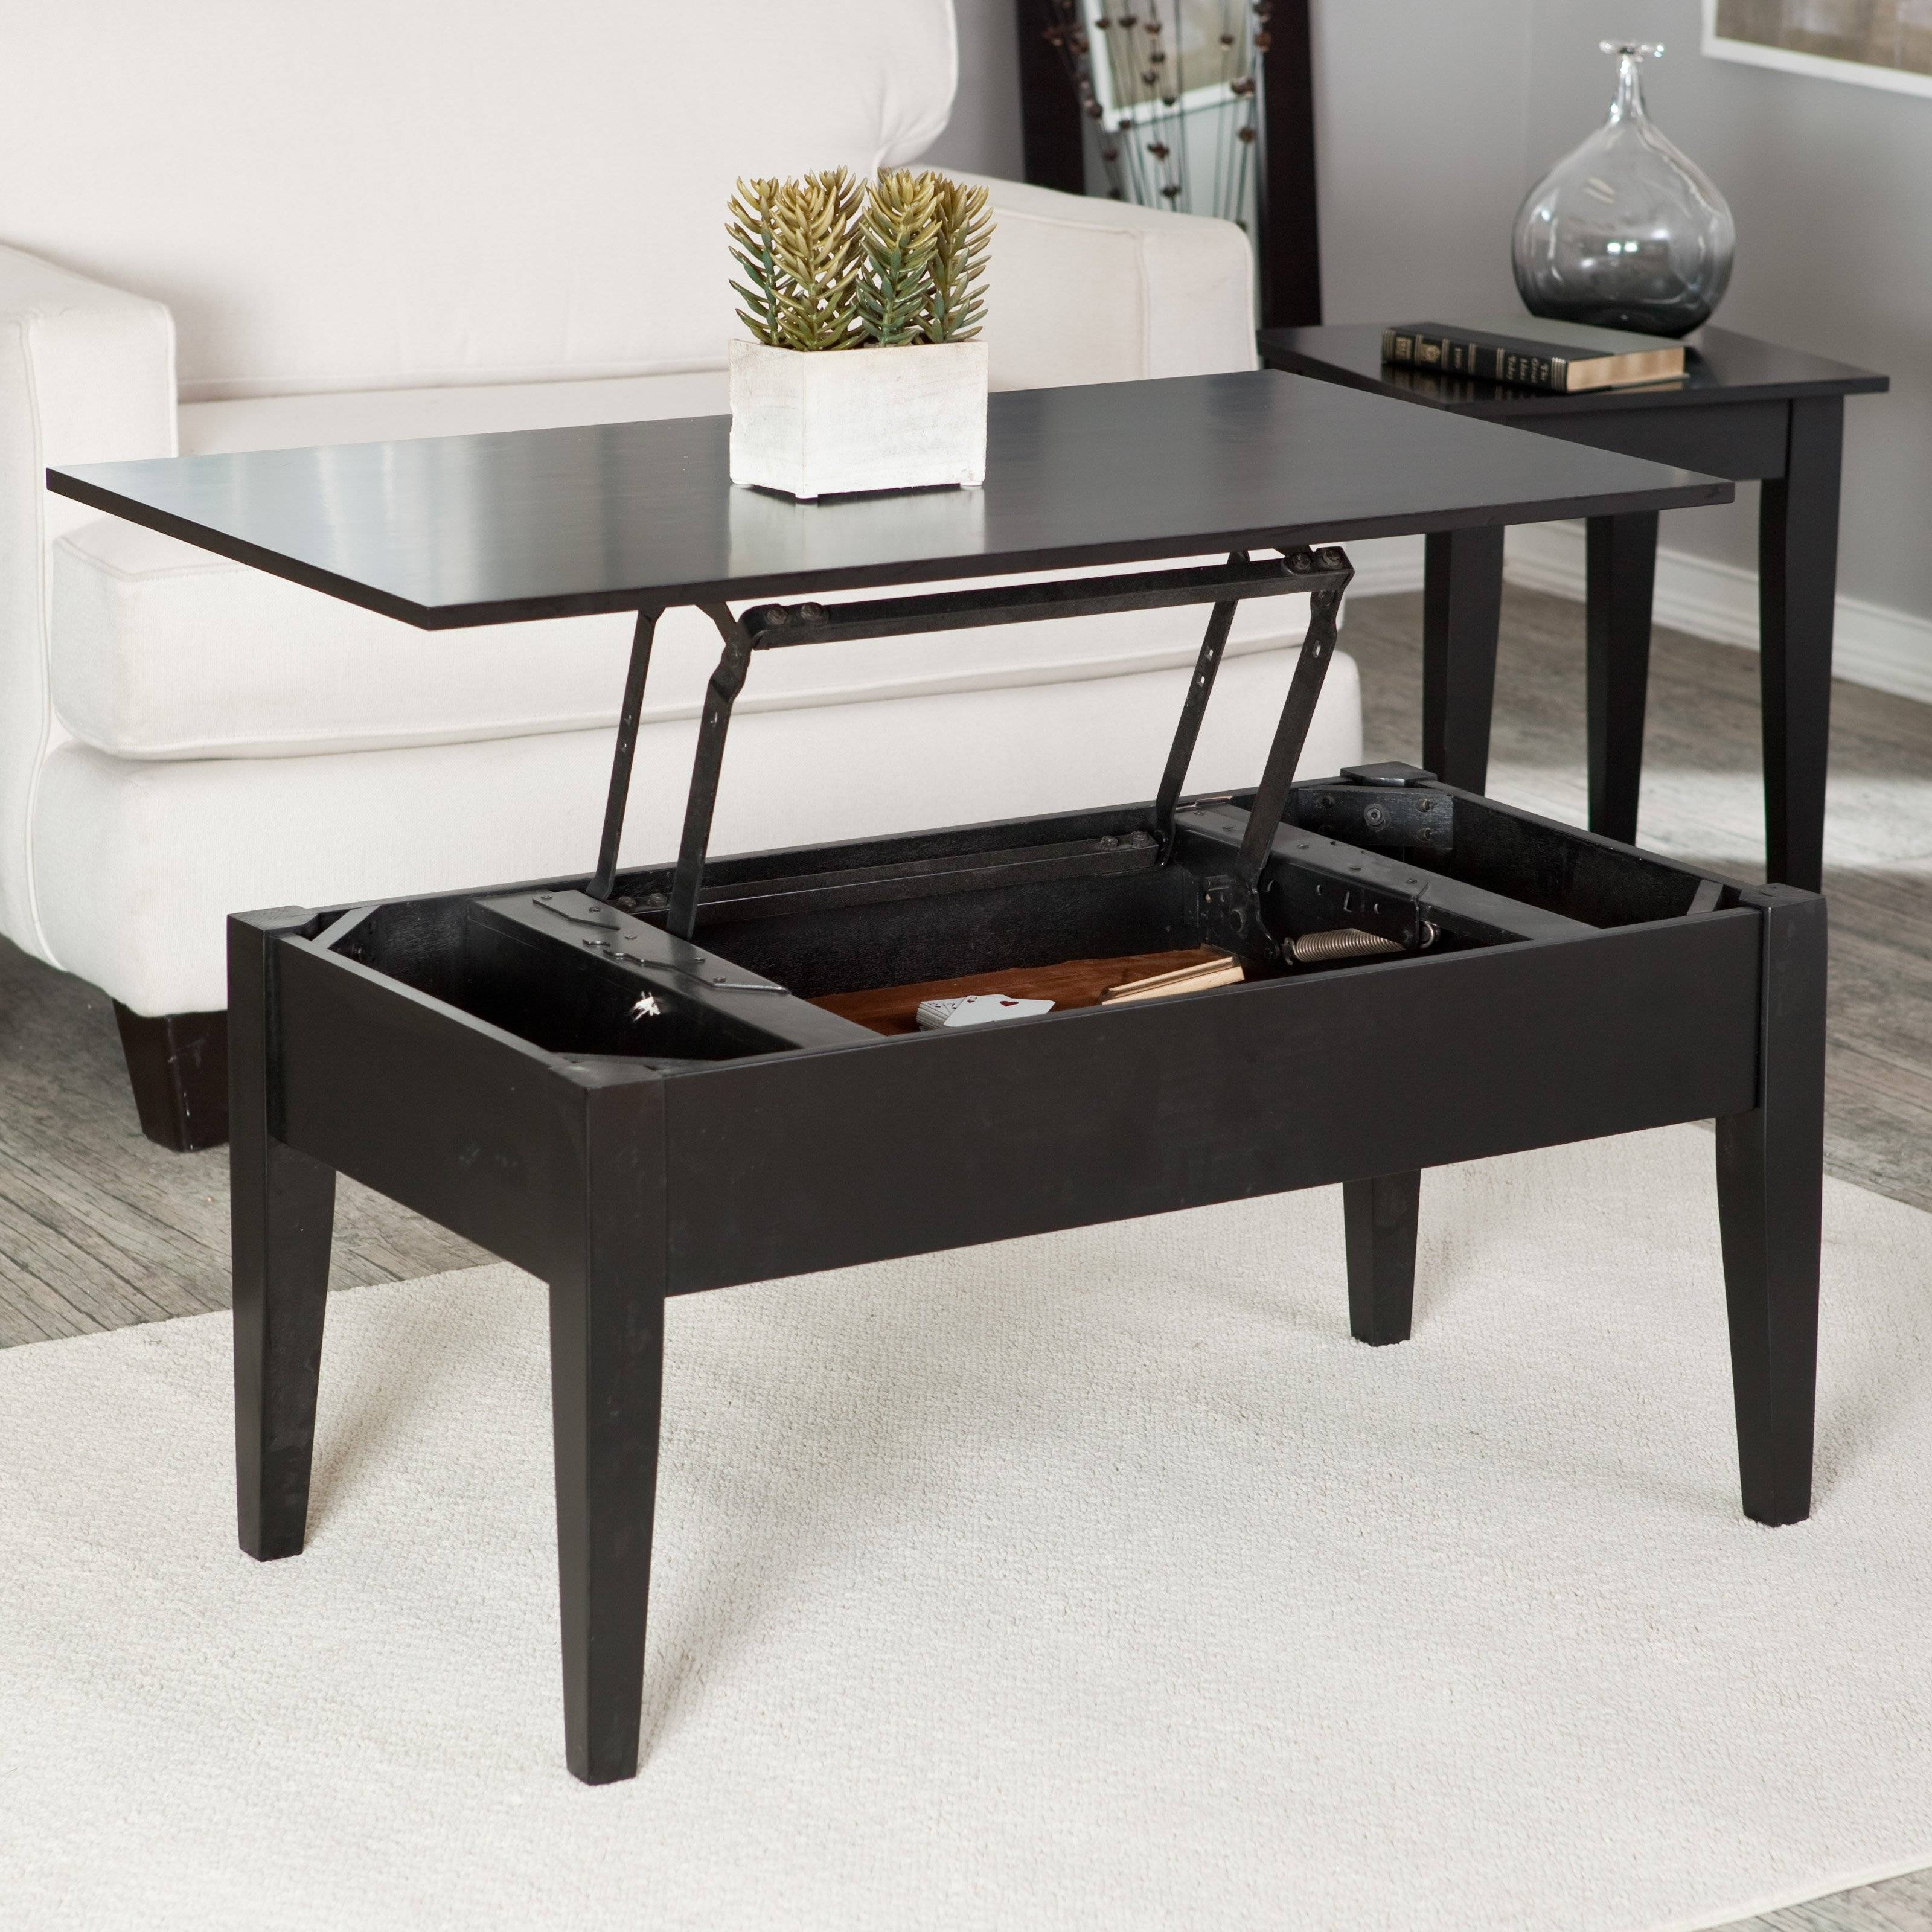 Table. Top Lift Coffee Table - Home Interior Design within Elevating Coffee Tables (Image 29 of 30)